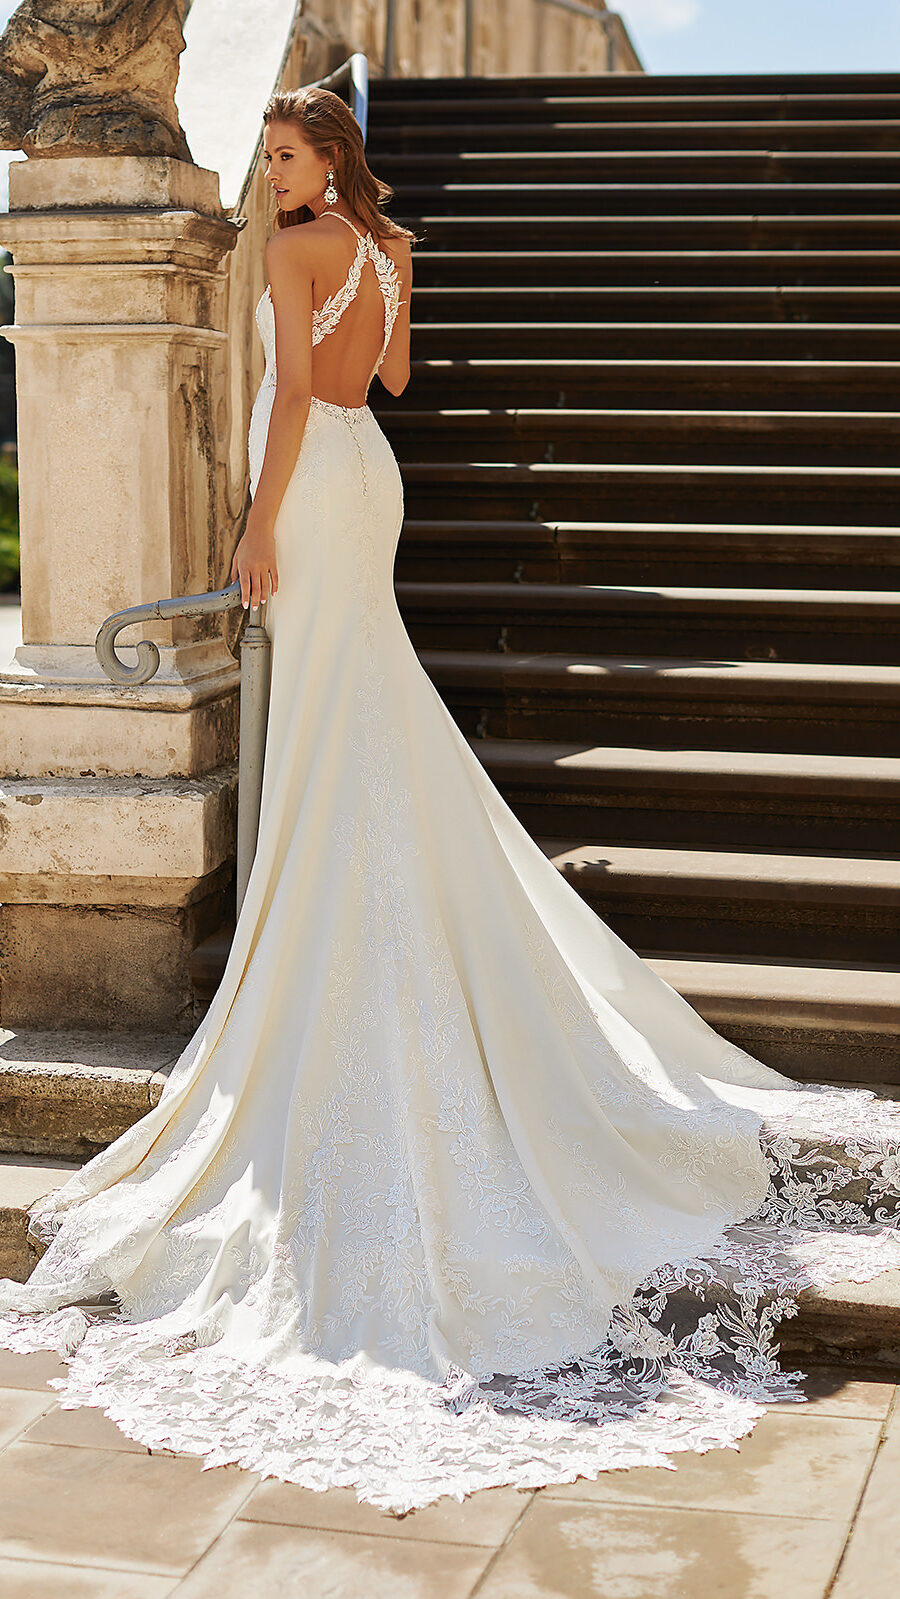 Designer Wedding Dresses by Moonlight Couture 2022 Bridal Collection - H1485